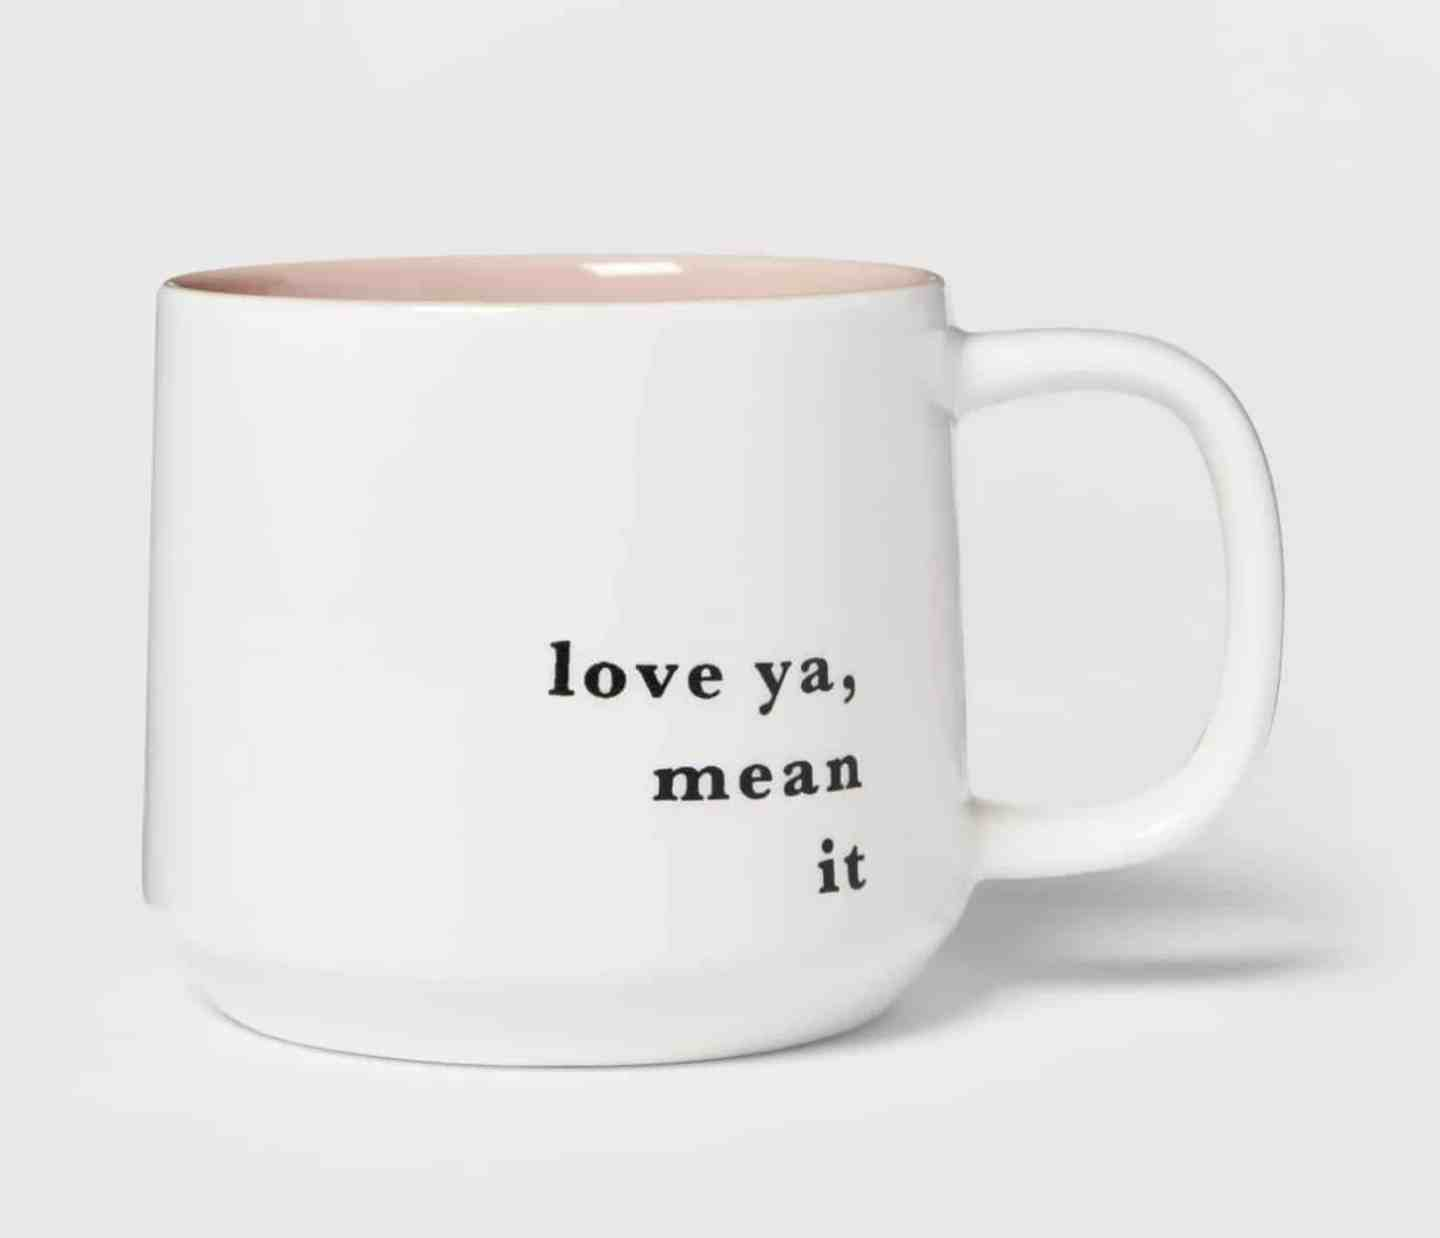 love-ya-mean-it-mug-stocking-stuffer